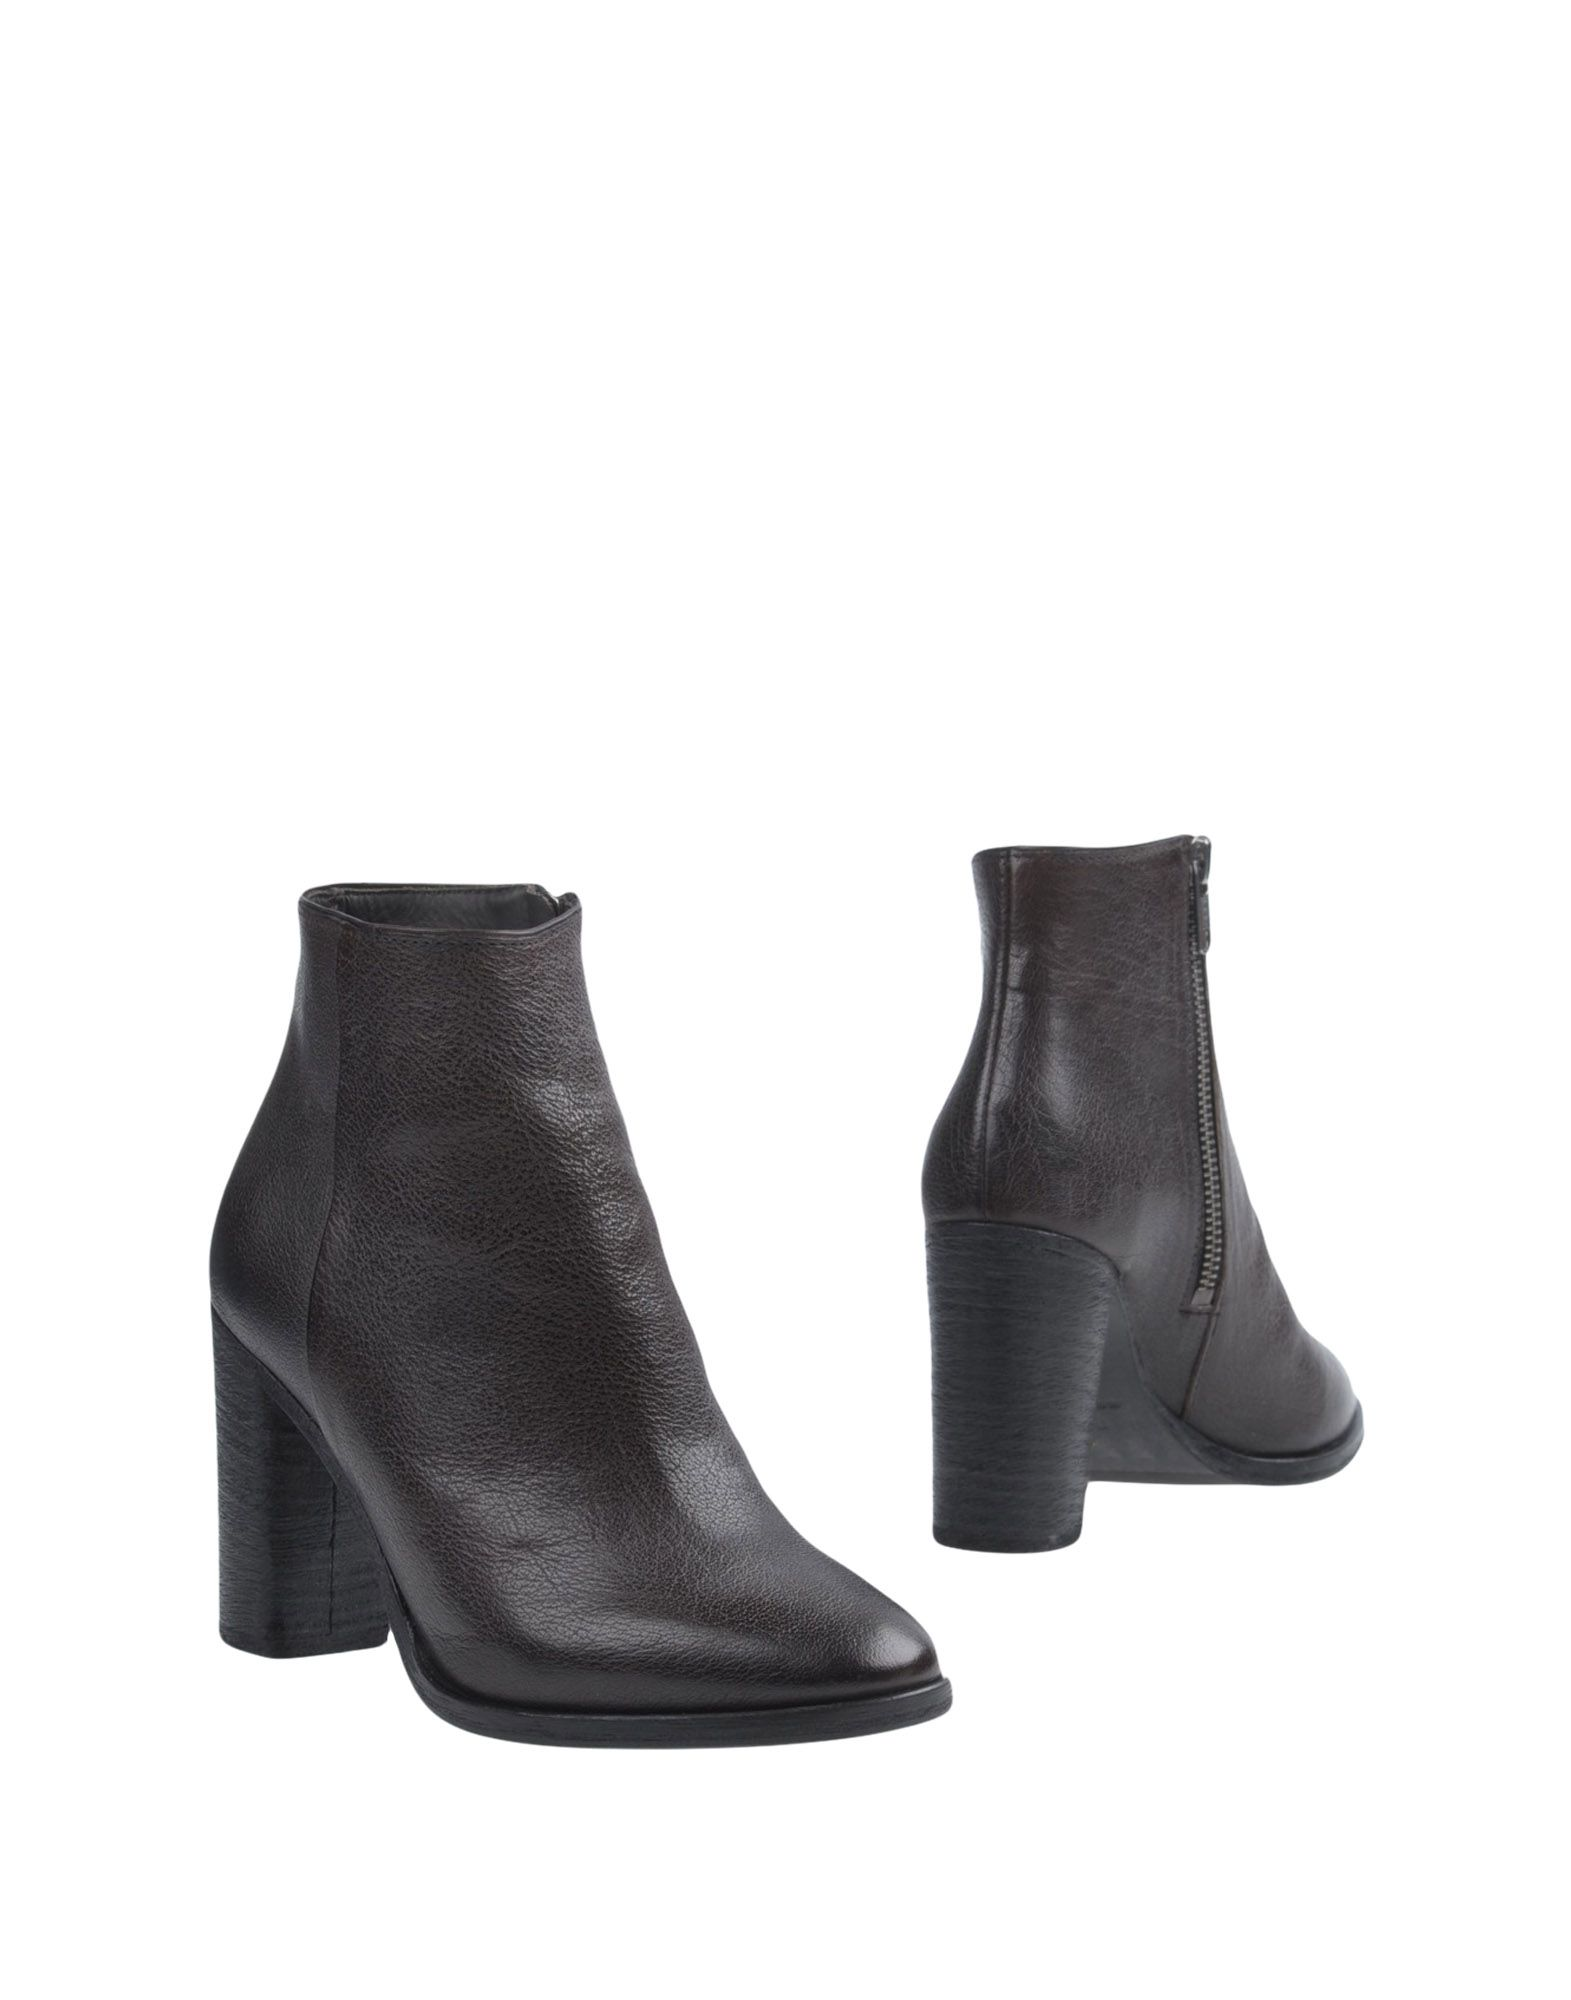 FOOTWEAR - Ankle boots on YOOX.COM Ros qAKoD3